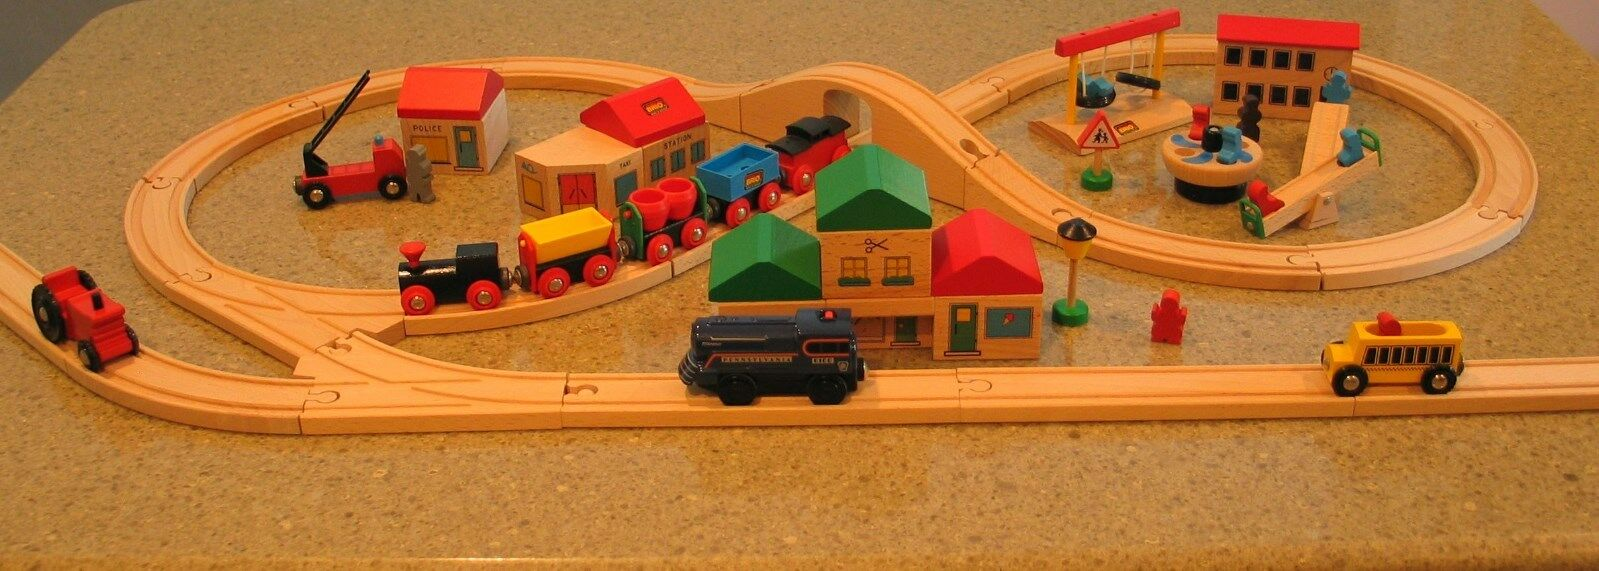 Brio Wooden Train Set With Extra Track And Accessories